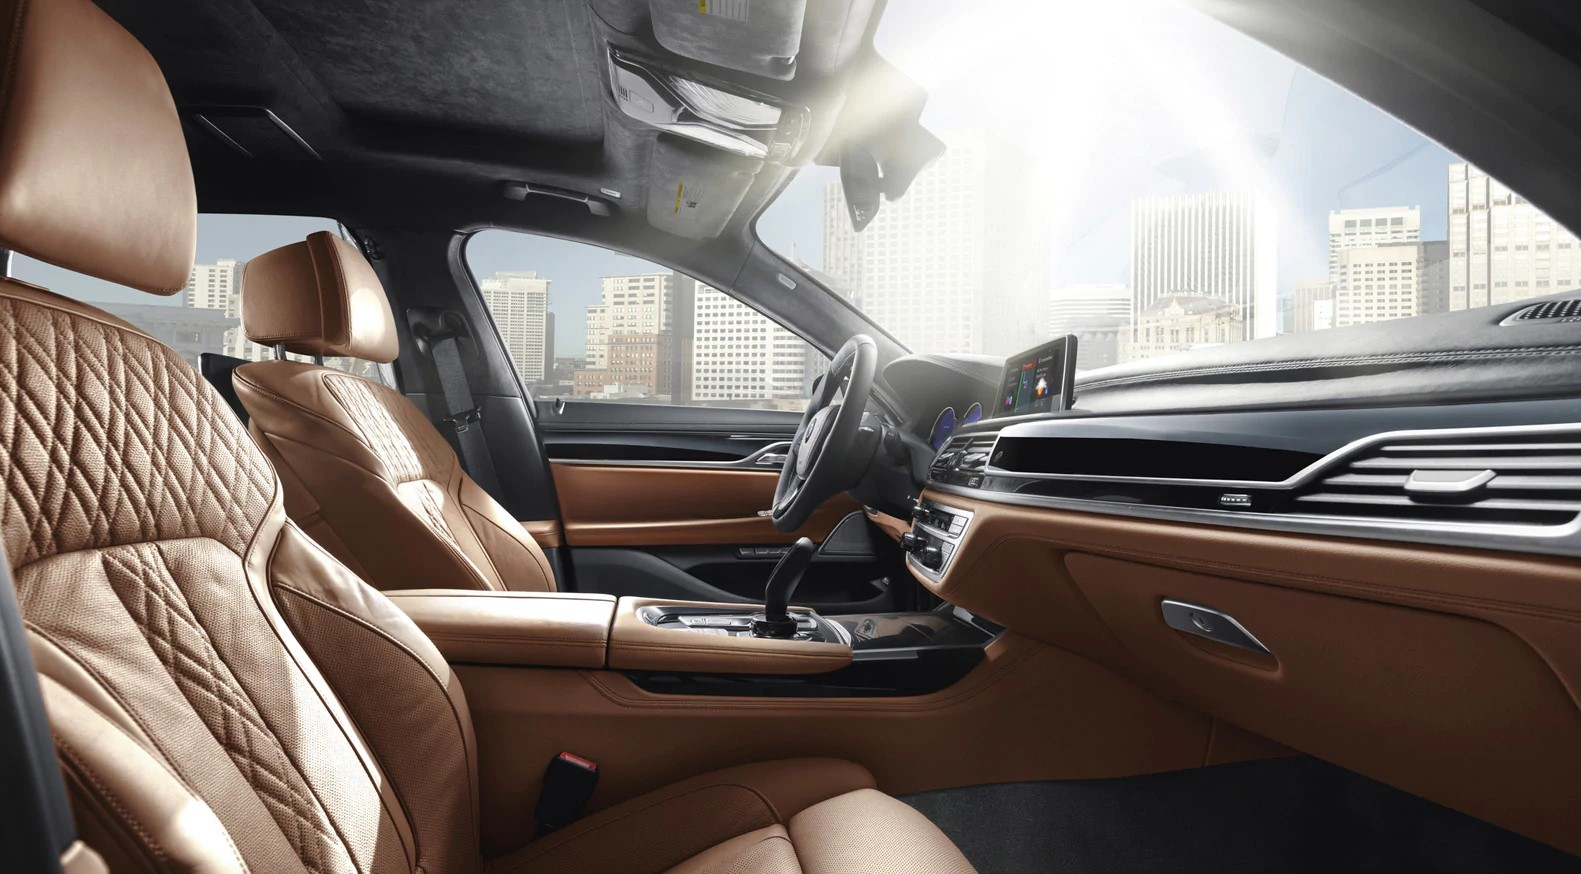 2019 BMW 740i Brown Interior